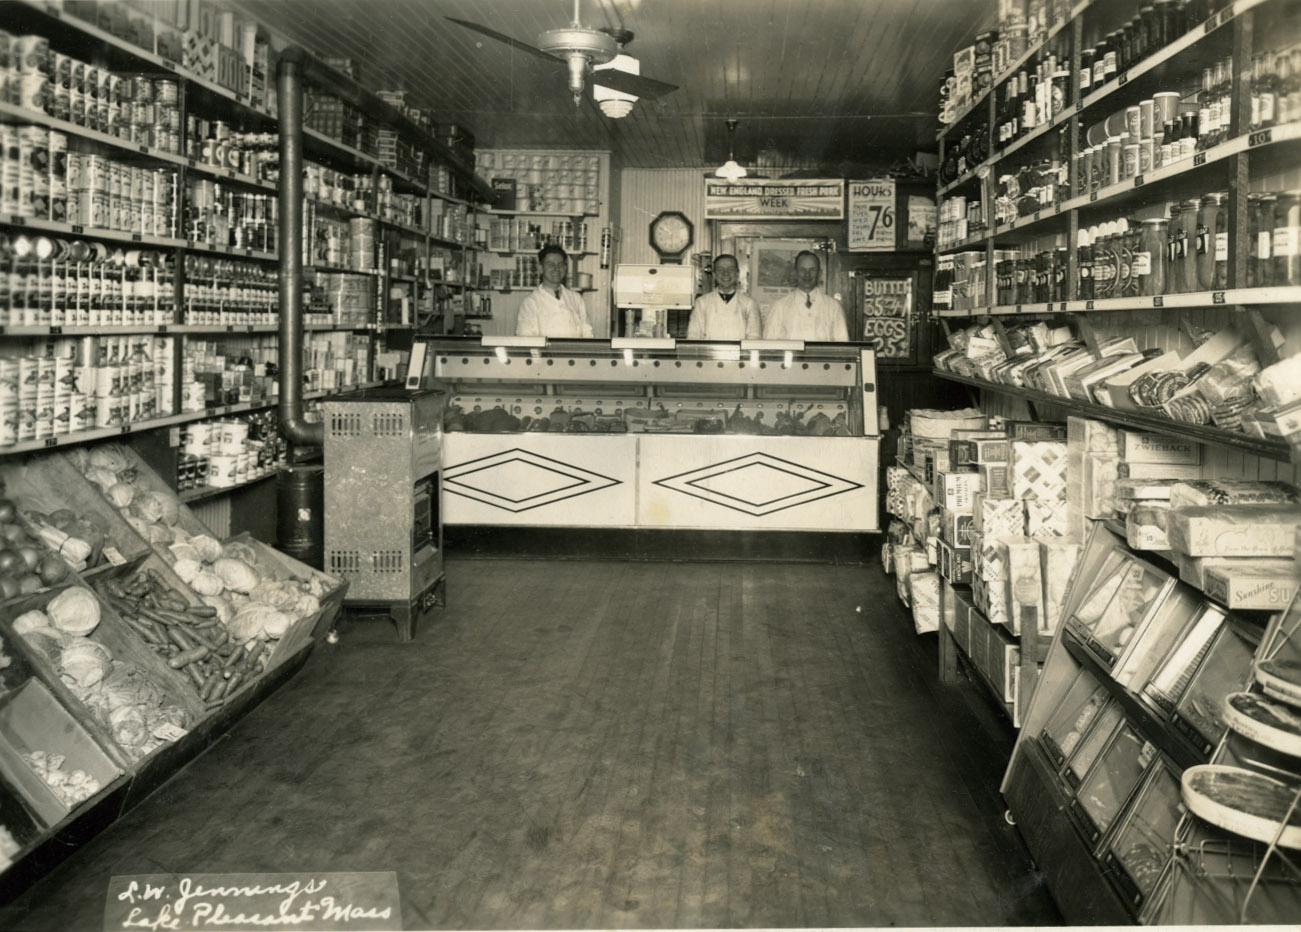 Joseph and Martha Bajgier at Bell Market, Chicopee, 1937